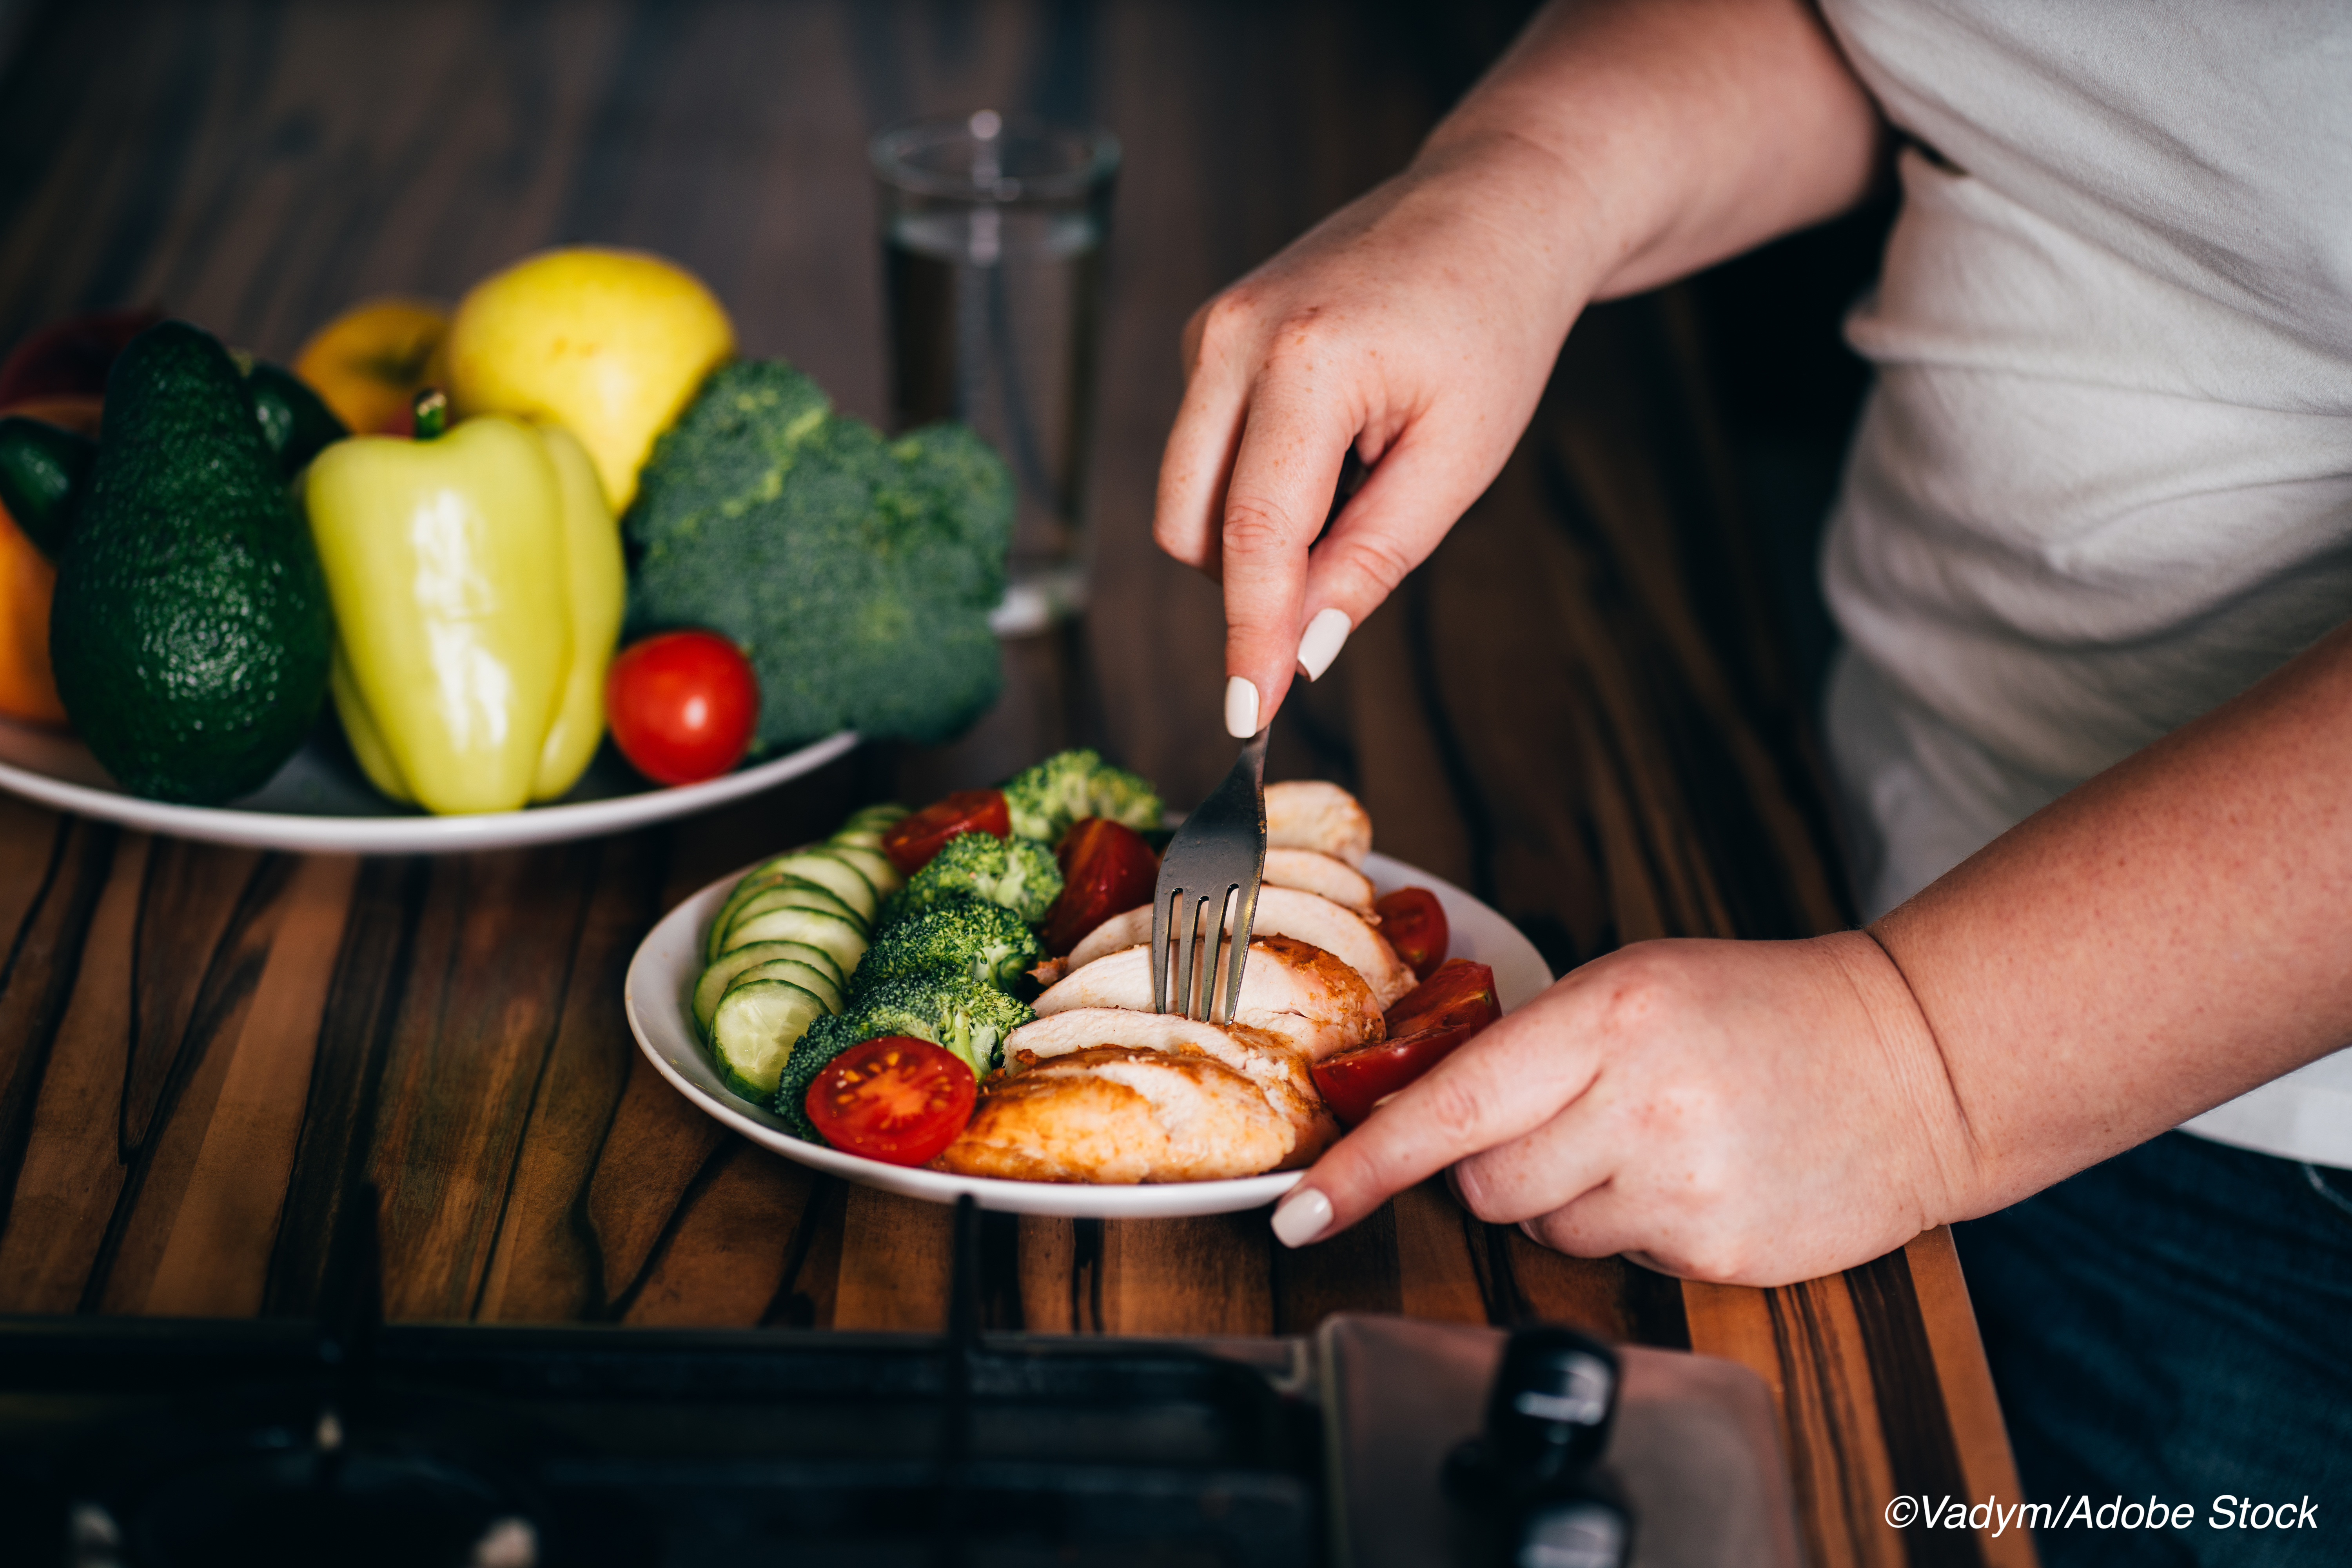 Low-Carb Diet and Type 2 Diabetes: Short-Term Adherence Associated with Remission